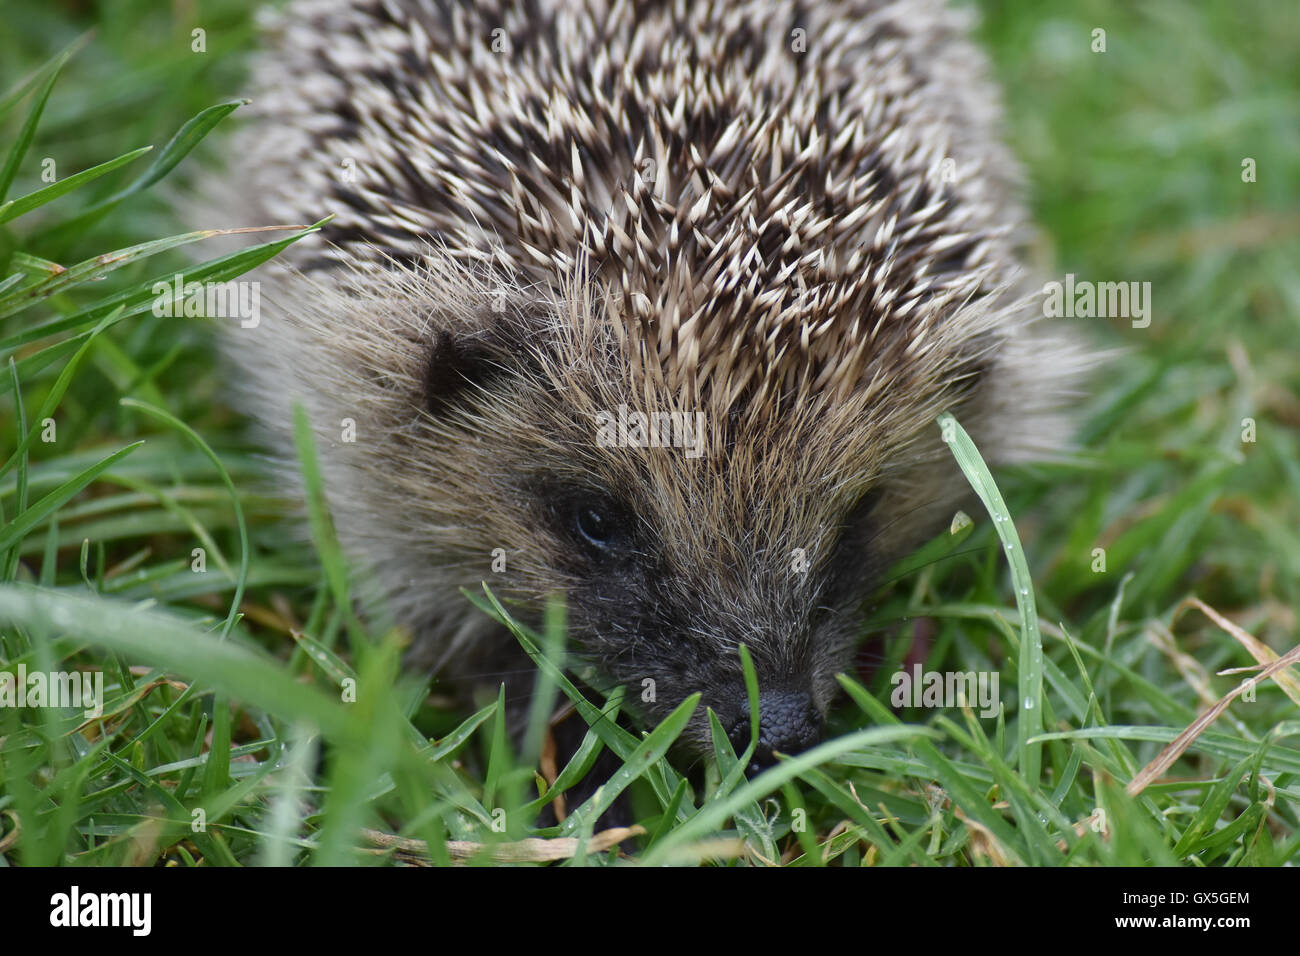 Face detail of European hedgehog - Stock Image